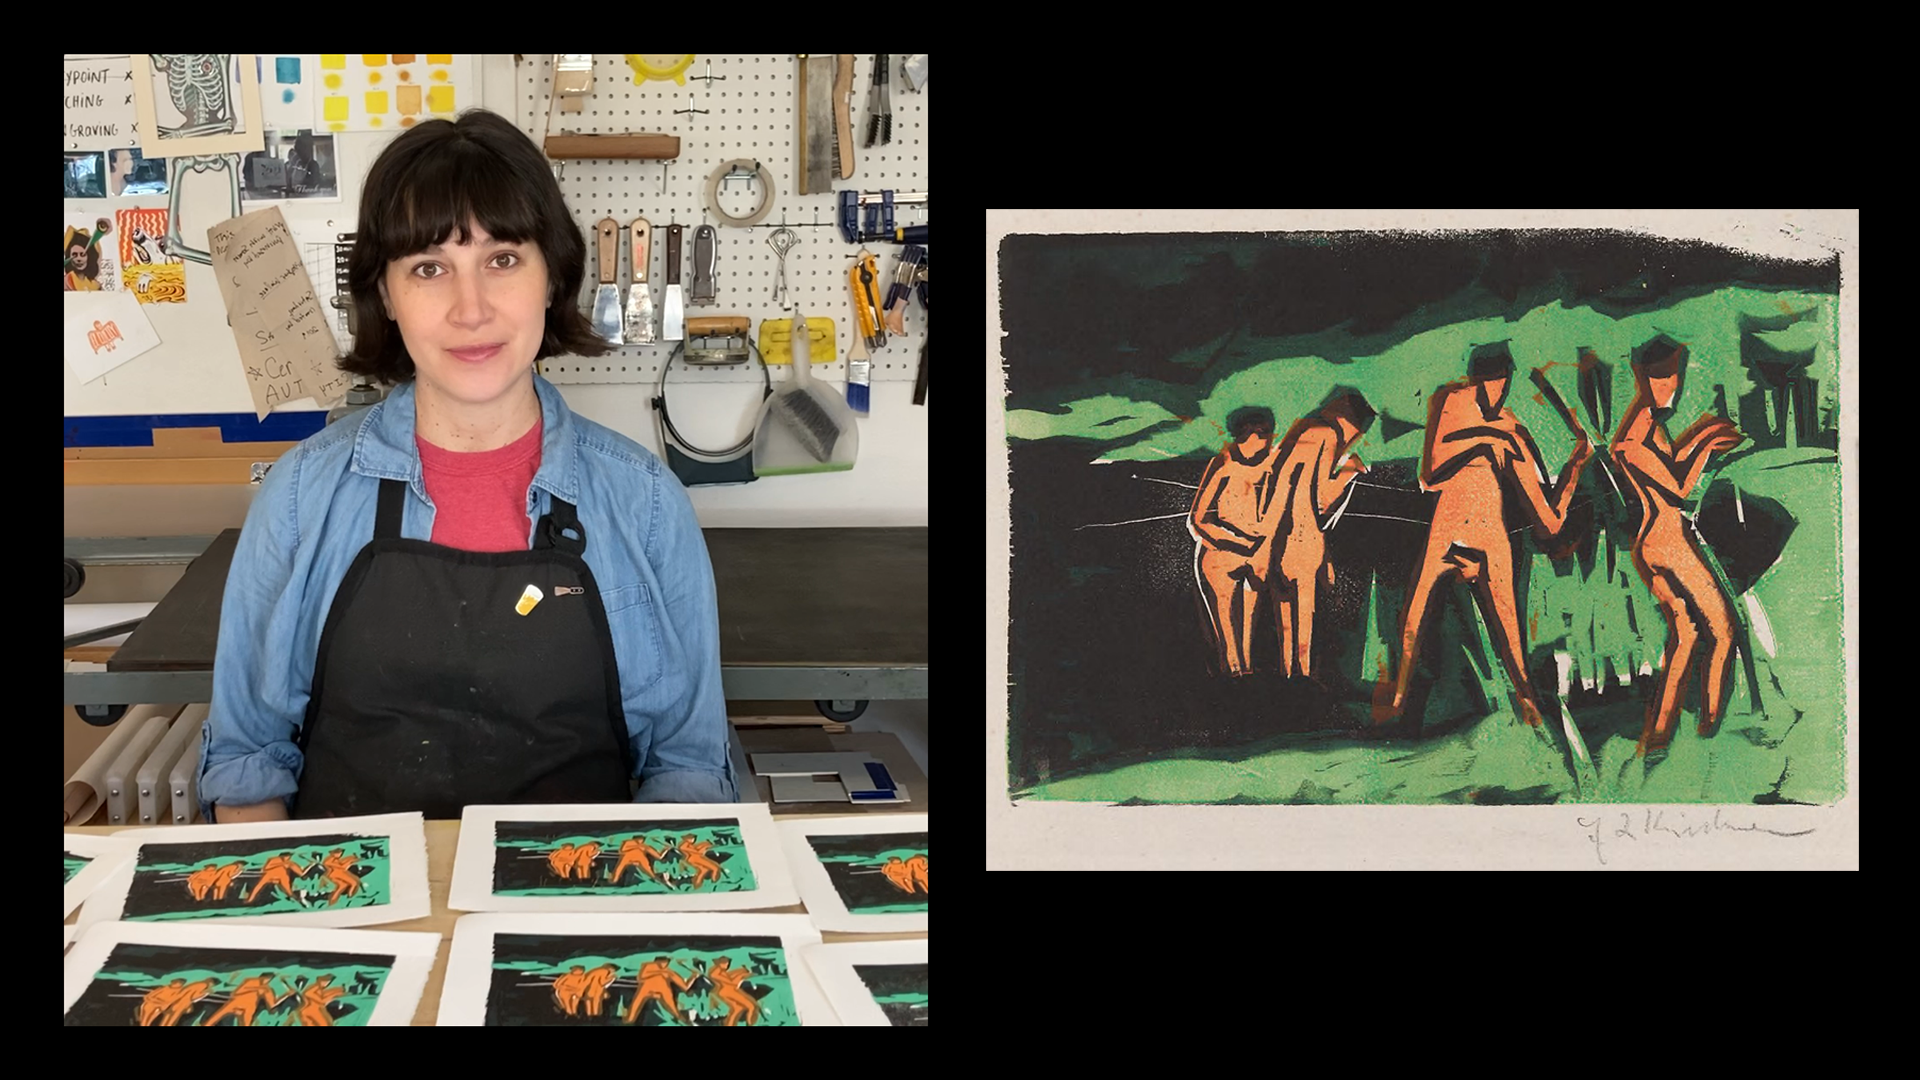 This image shows a split screen. On the left, a woman wearing a black apron sits at a worktable with several woodcut prints in front of her. They show abstracted orange-hued nude figures on the shore of a pond, with green foliage behind them. The right side is an enlarged view of one of the prints, and it is set against a black background. A signature is at bottom right.